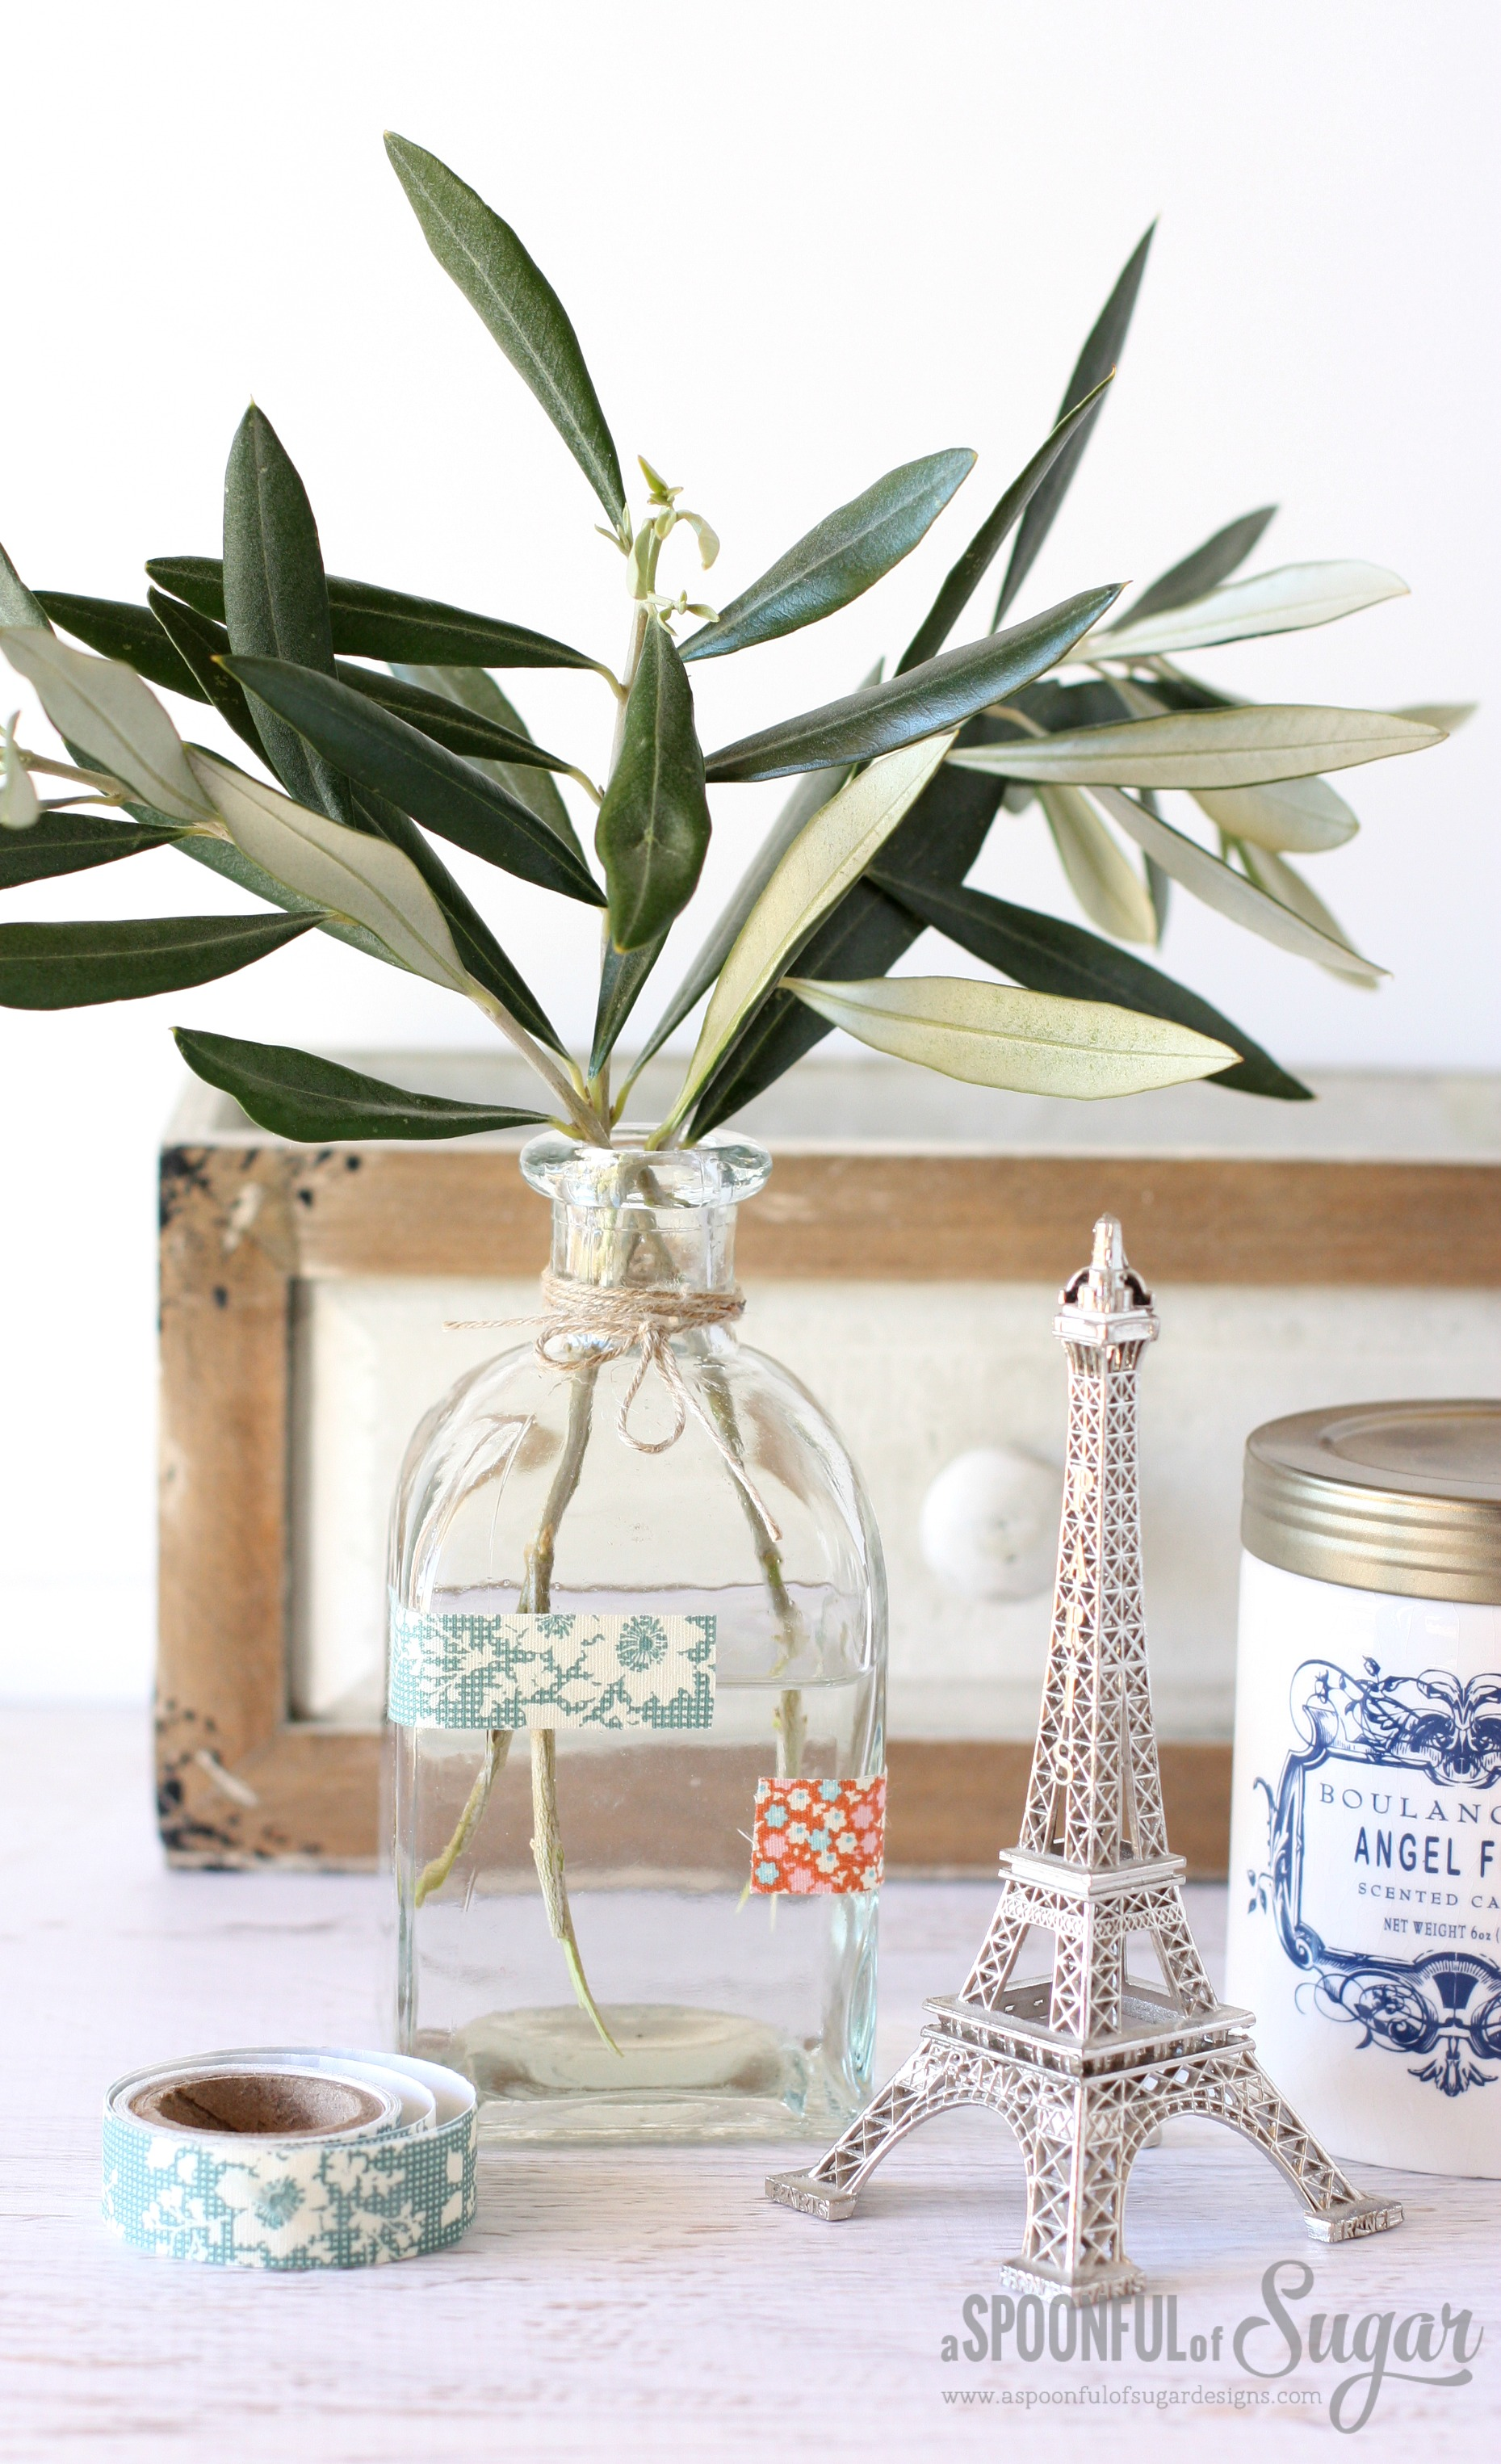 Decorate glass jars and bottles with Fabric Tape